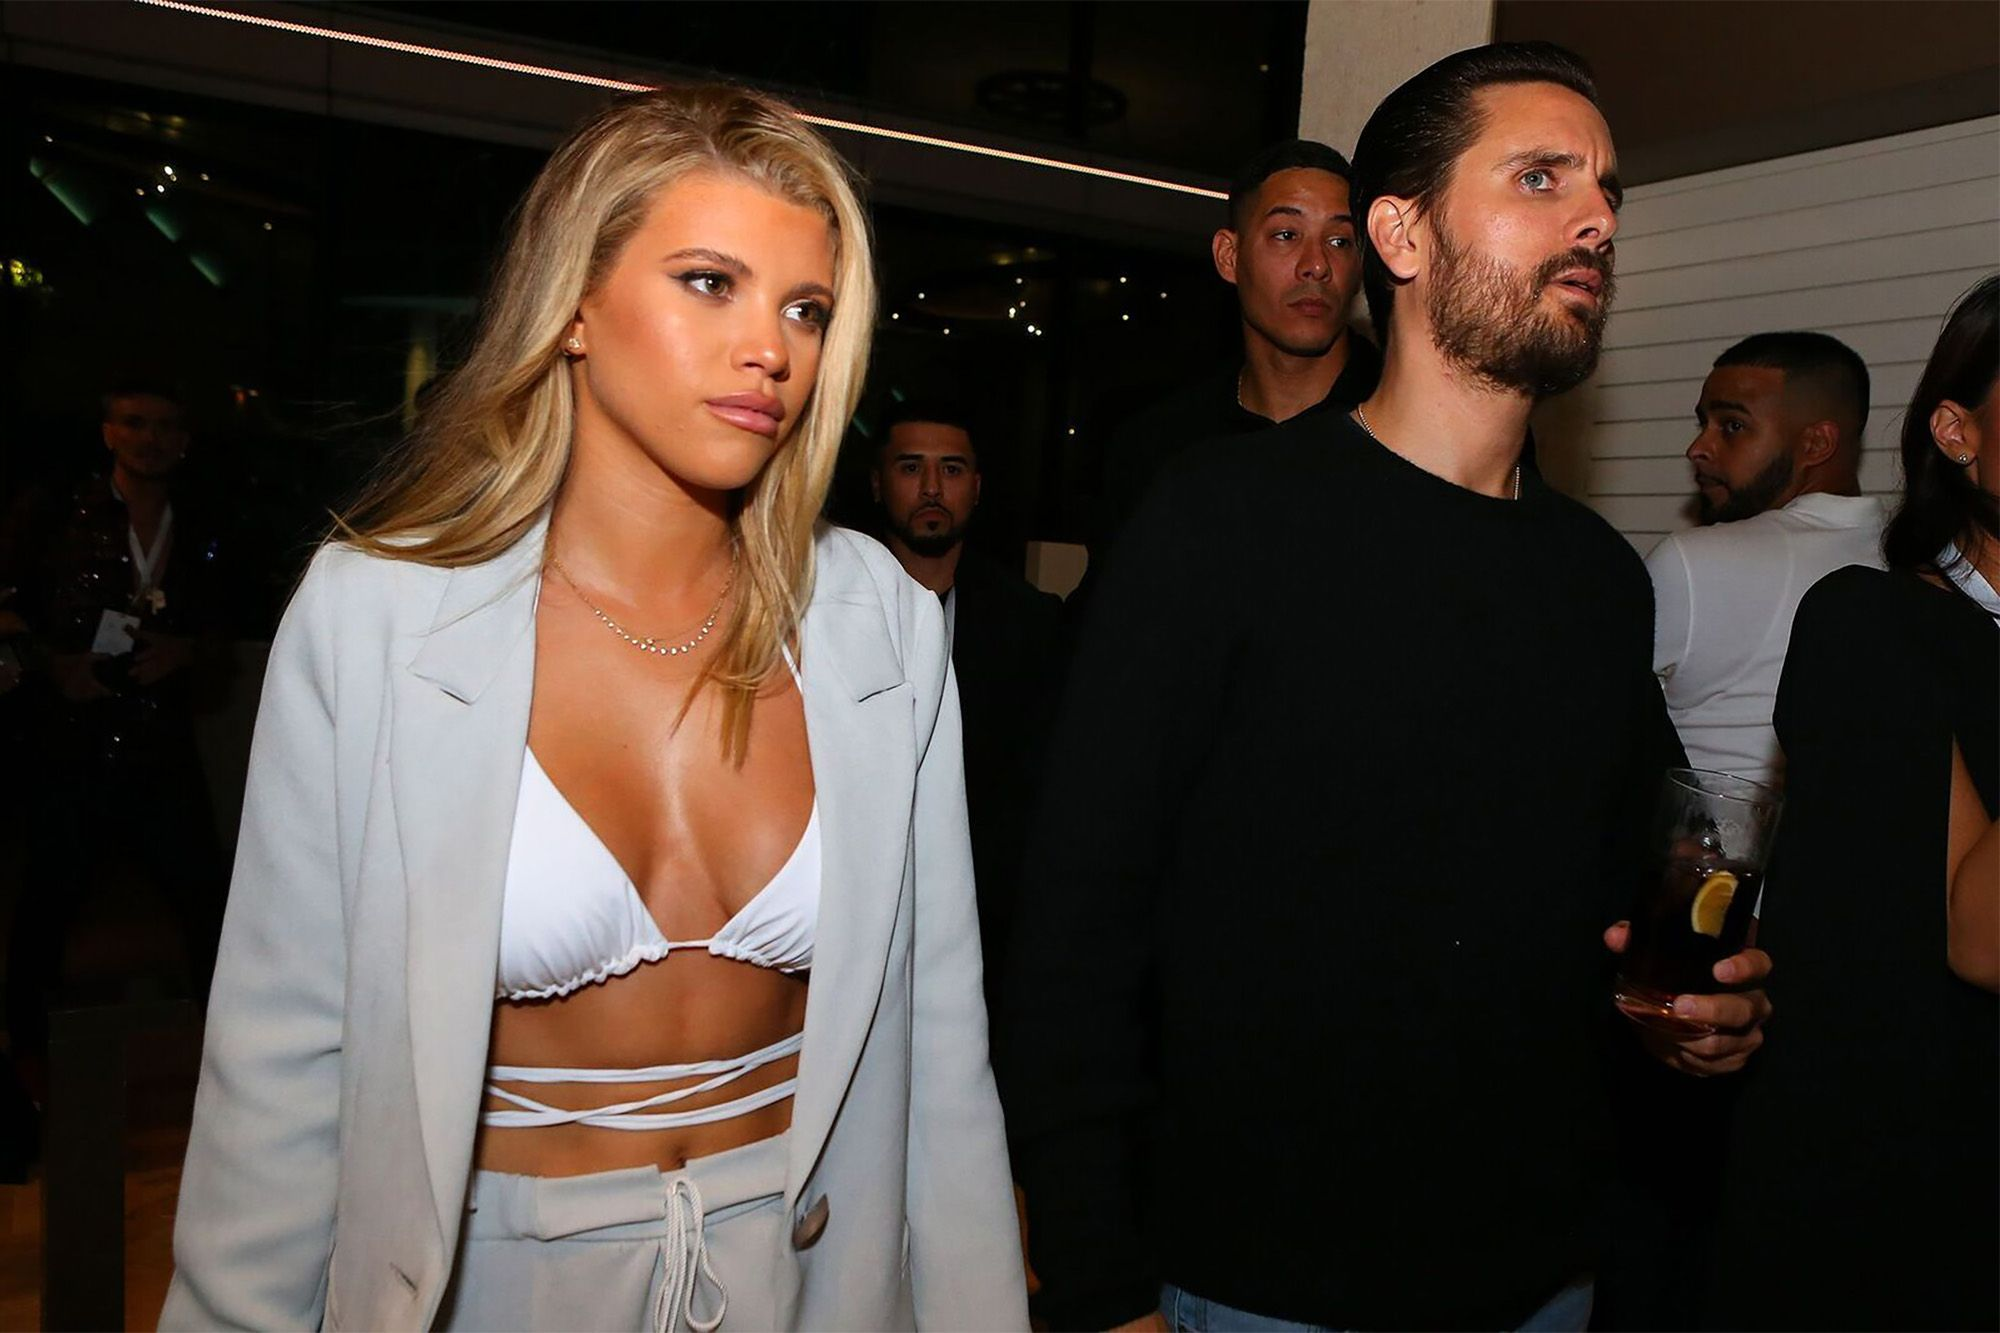 Sofia Richie flaunts her envy-inducing abs in a TINY pink bikini as she gushes about 'living her best life' in saucy Instagram snap